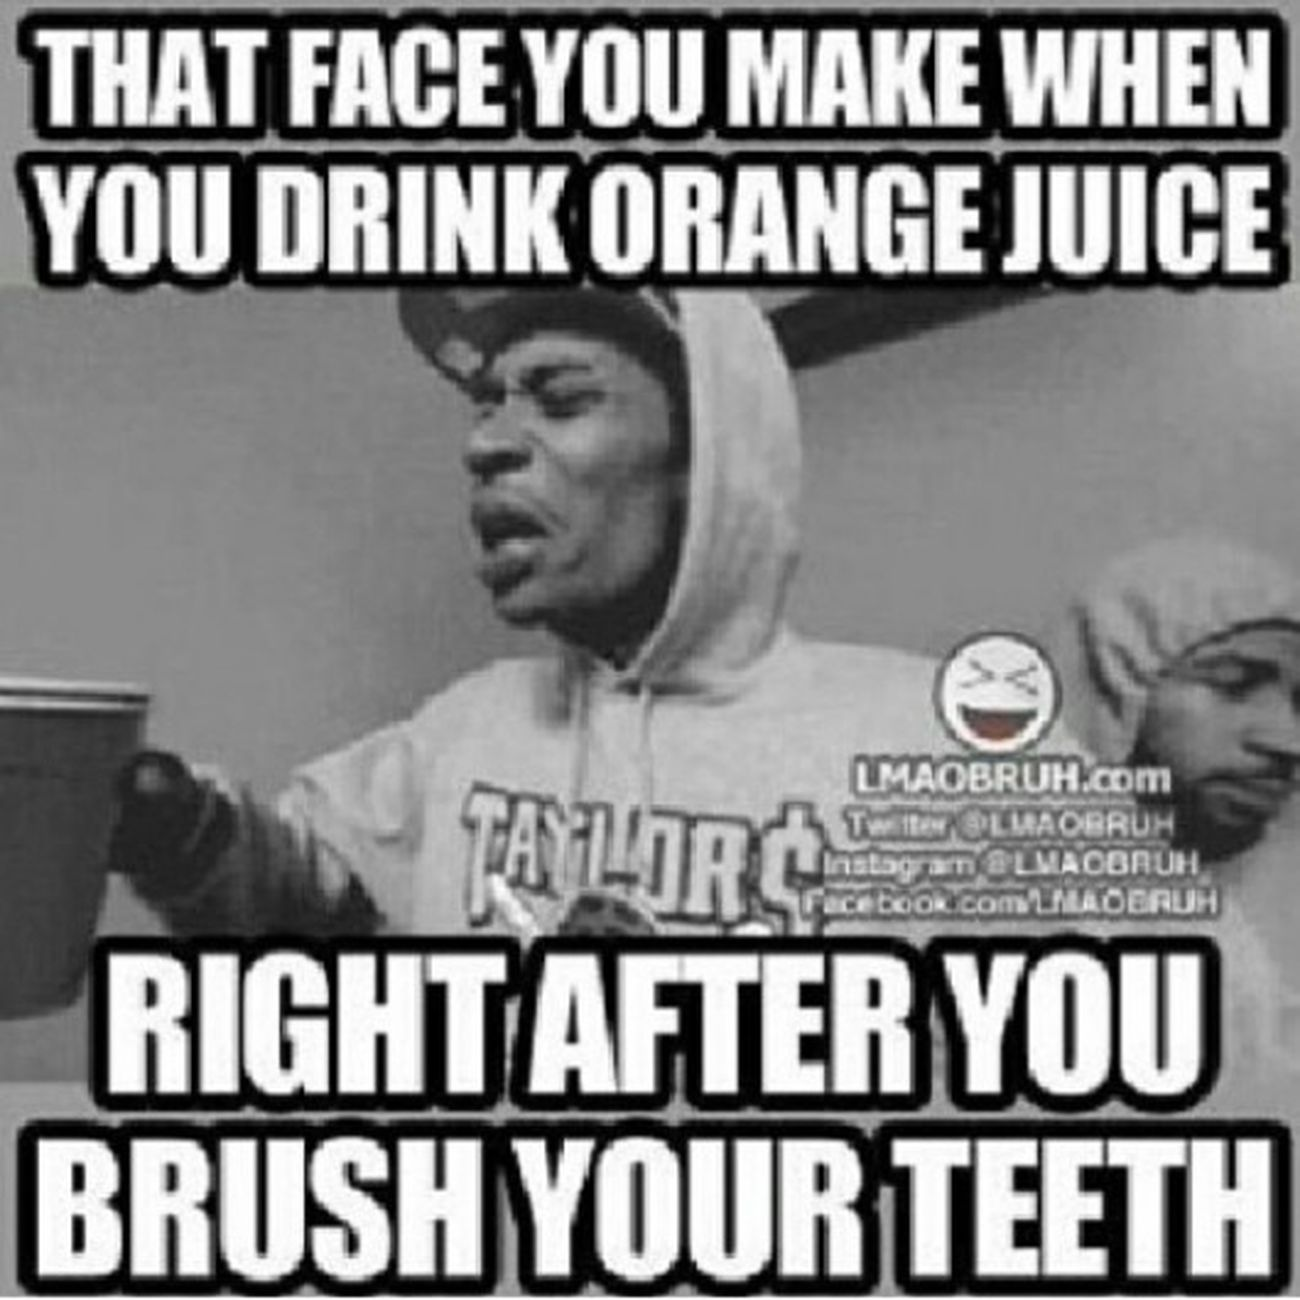 So True Drinking Orange Juice After Brushing Your Teeth